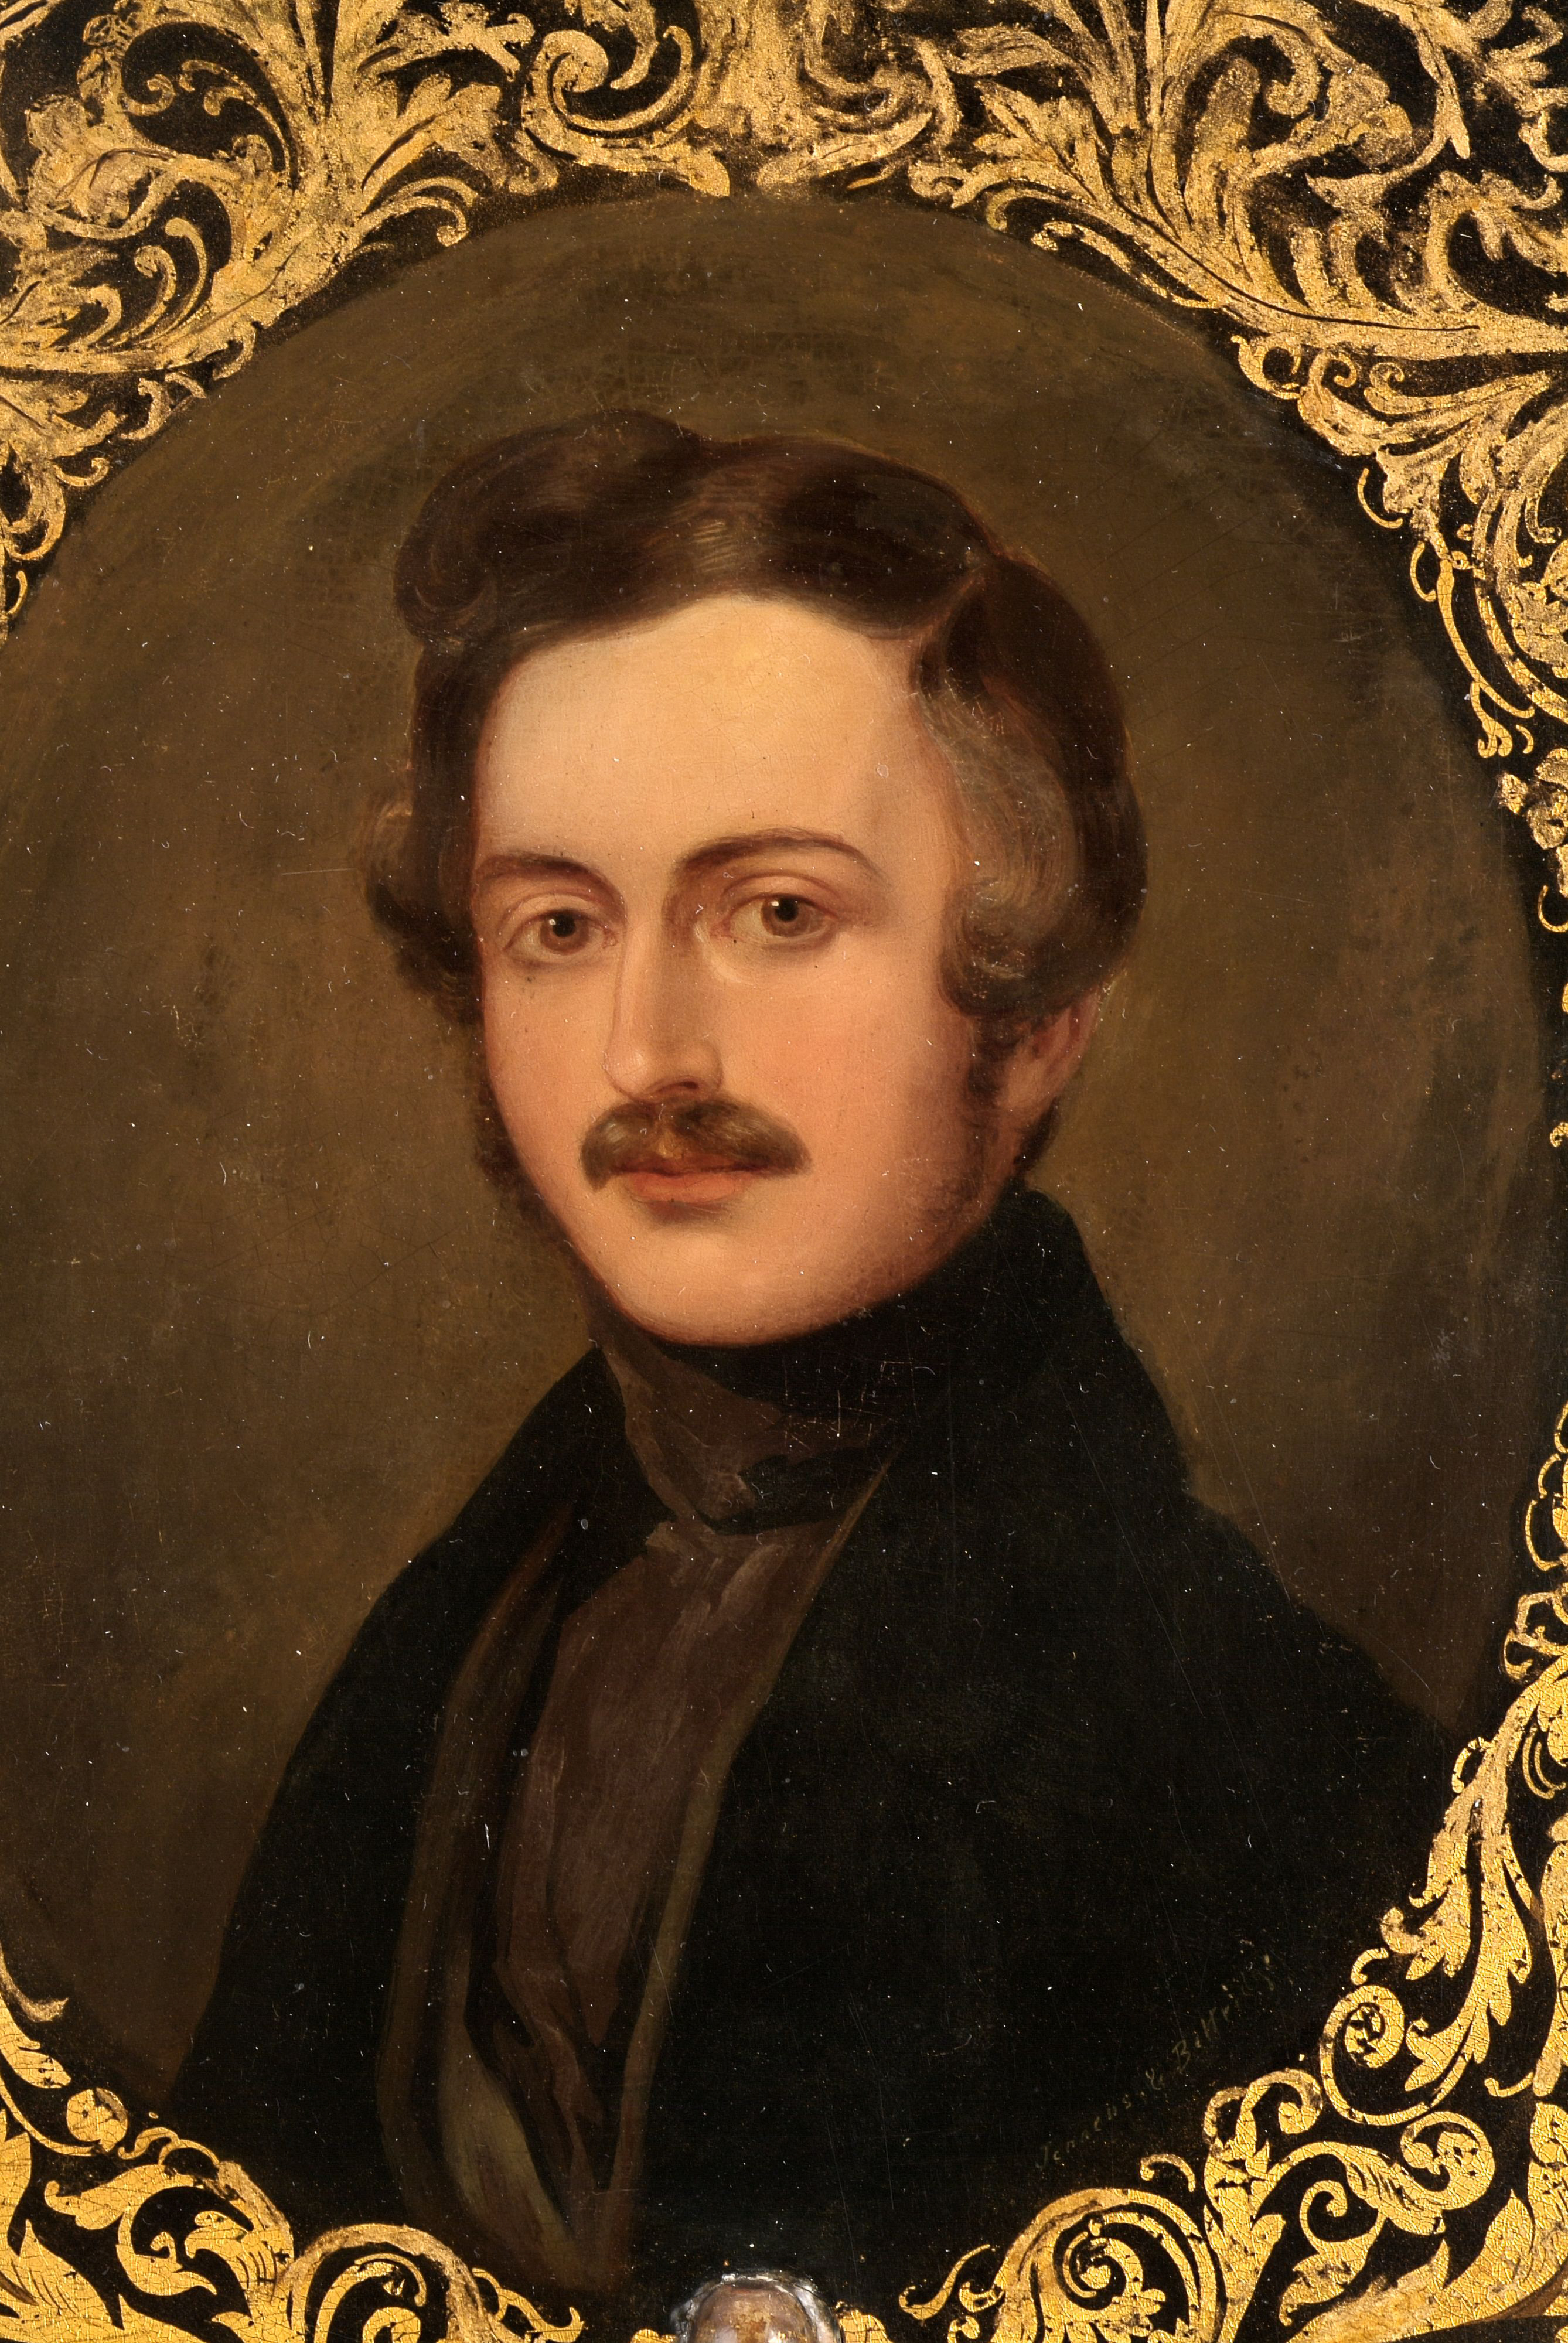 Detail of Portrait of Prince Albert on Papier Mâché Face Screen, 1840. One of a pair, probably made to commemorate the royal wedding of Queen Victoria and Prince Albert in 1840.